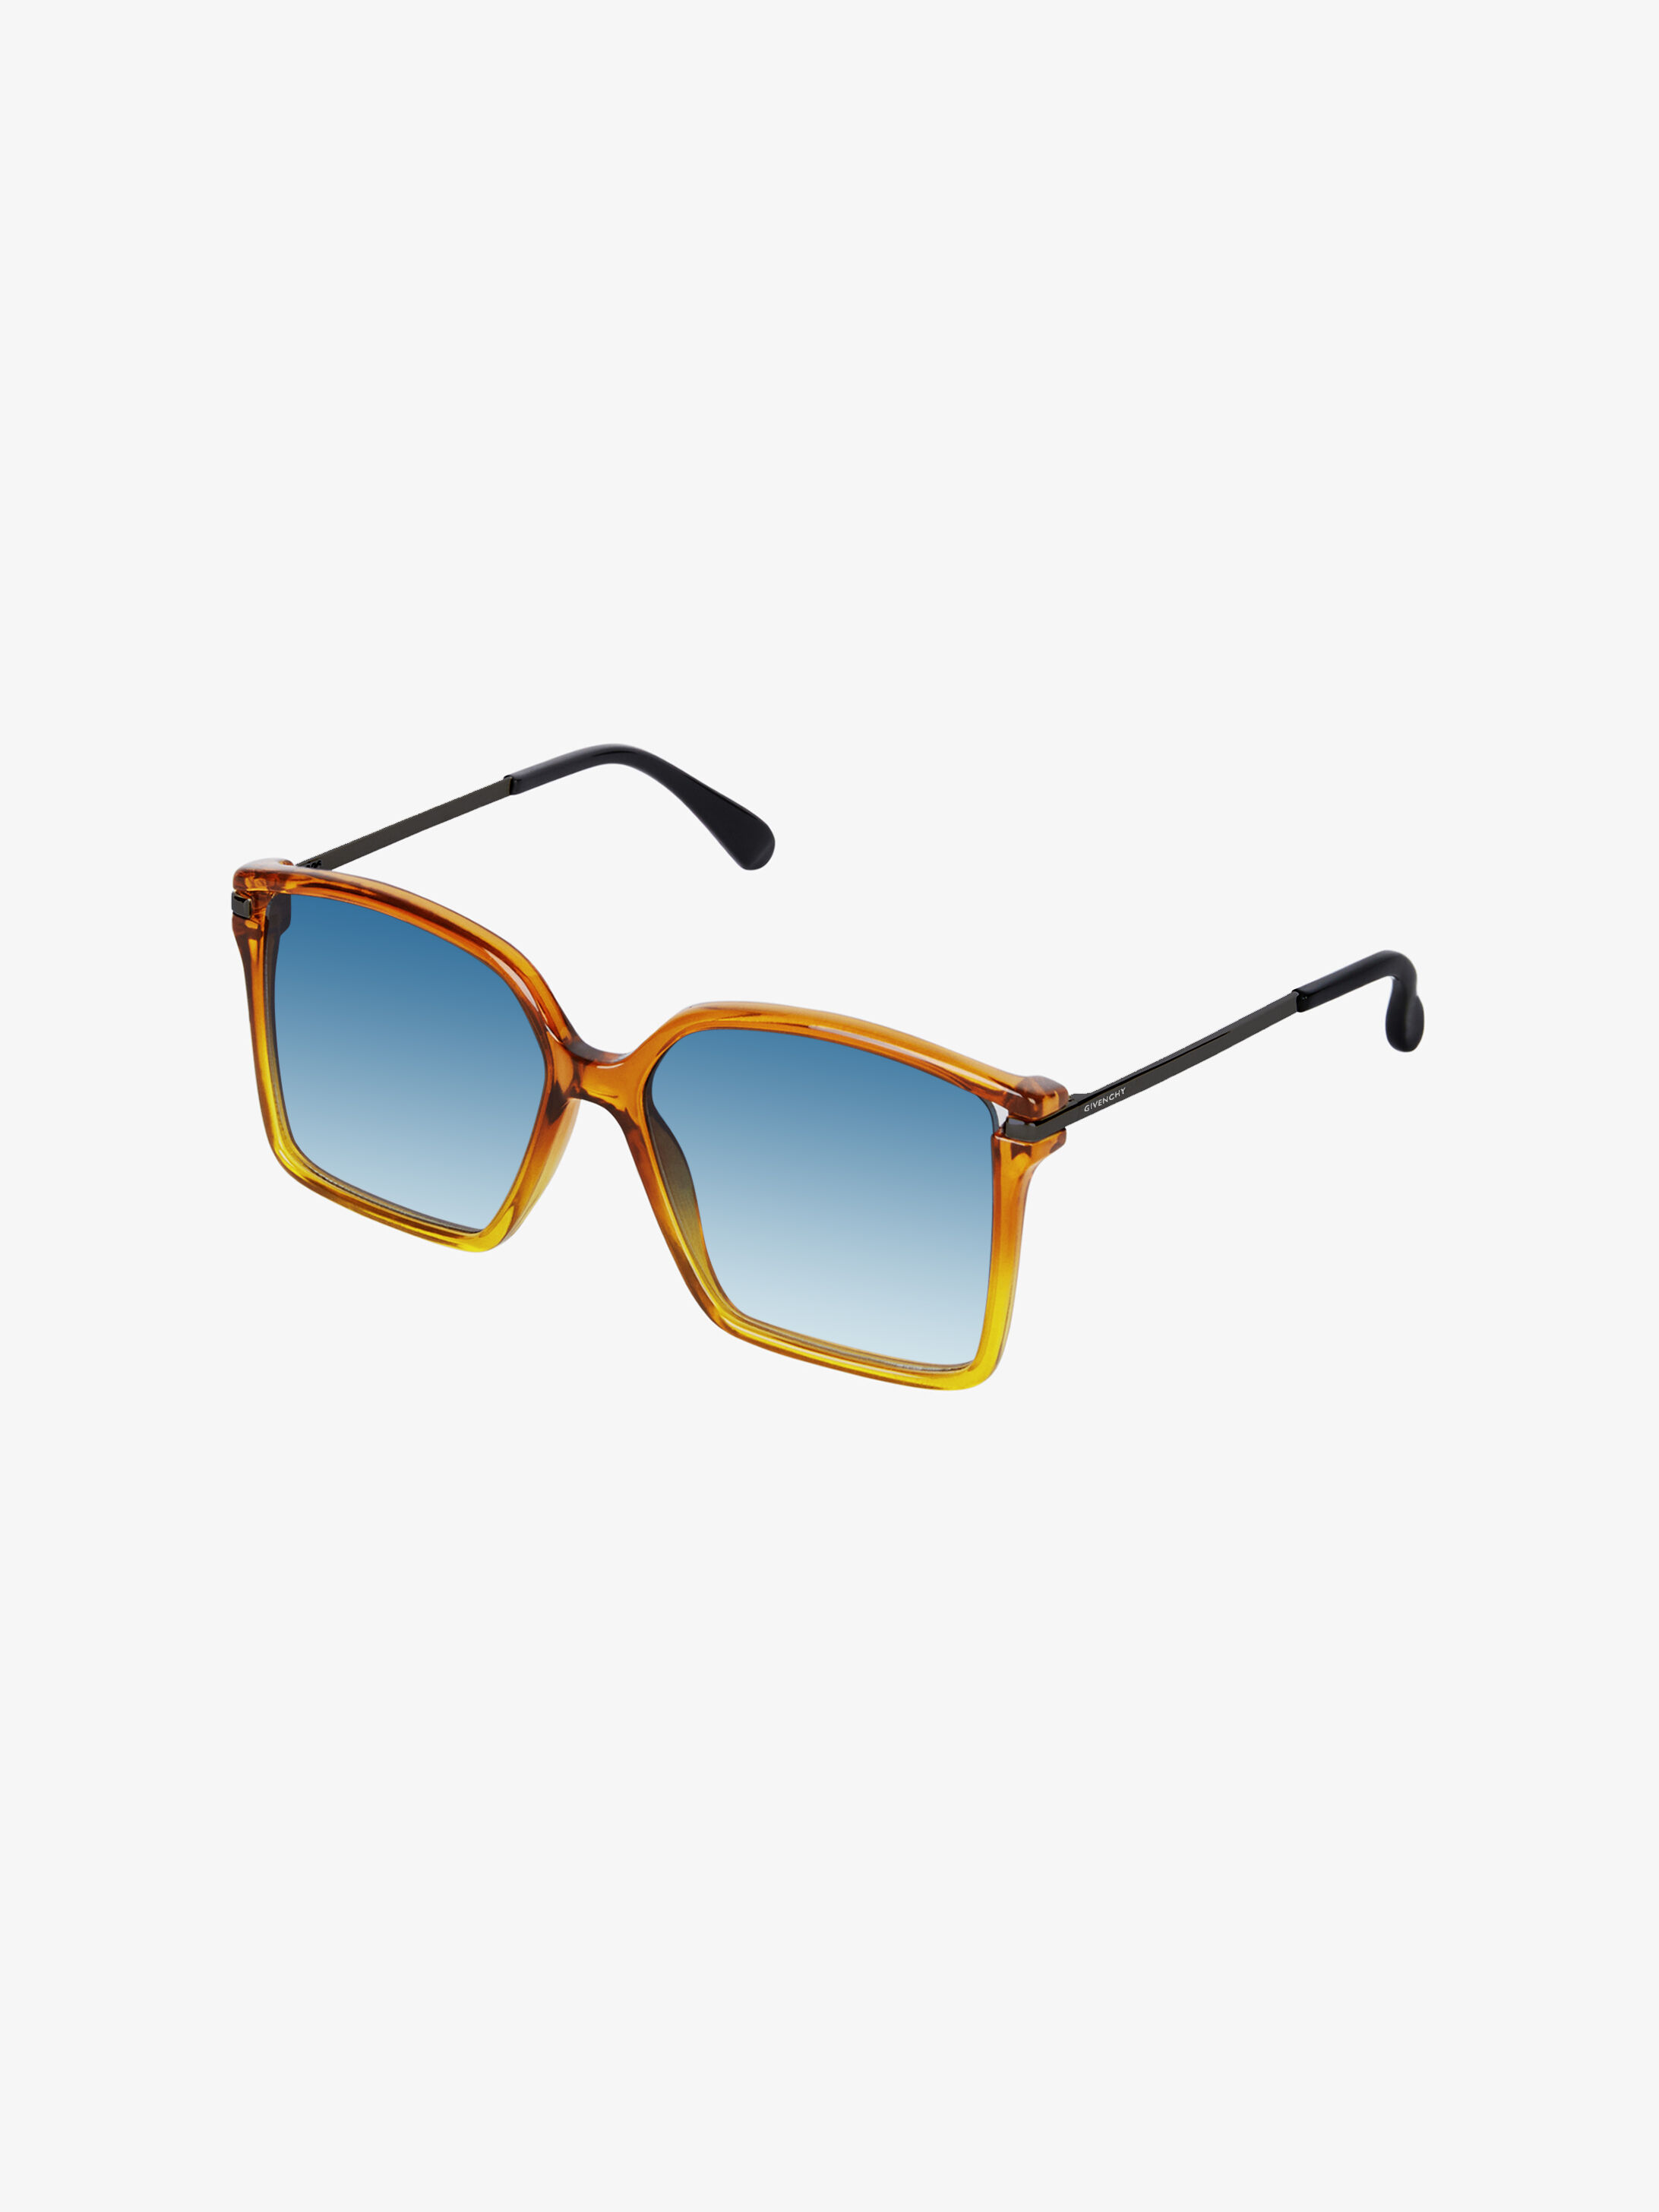 e0e1c076db Women's Sunglasses collection by Givenchy. | GIVENCHY Paris